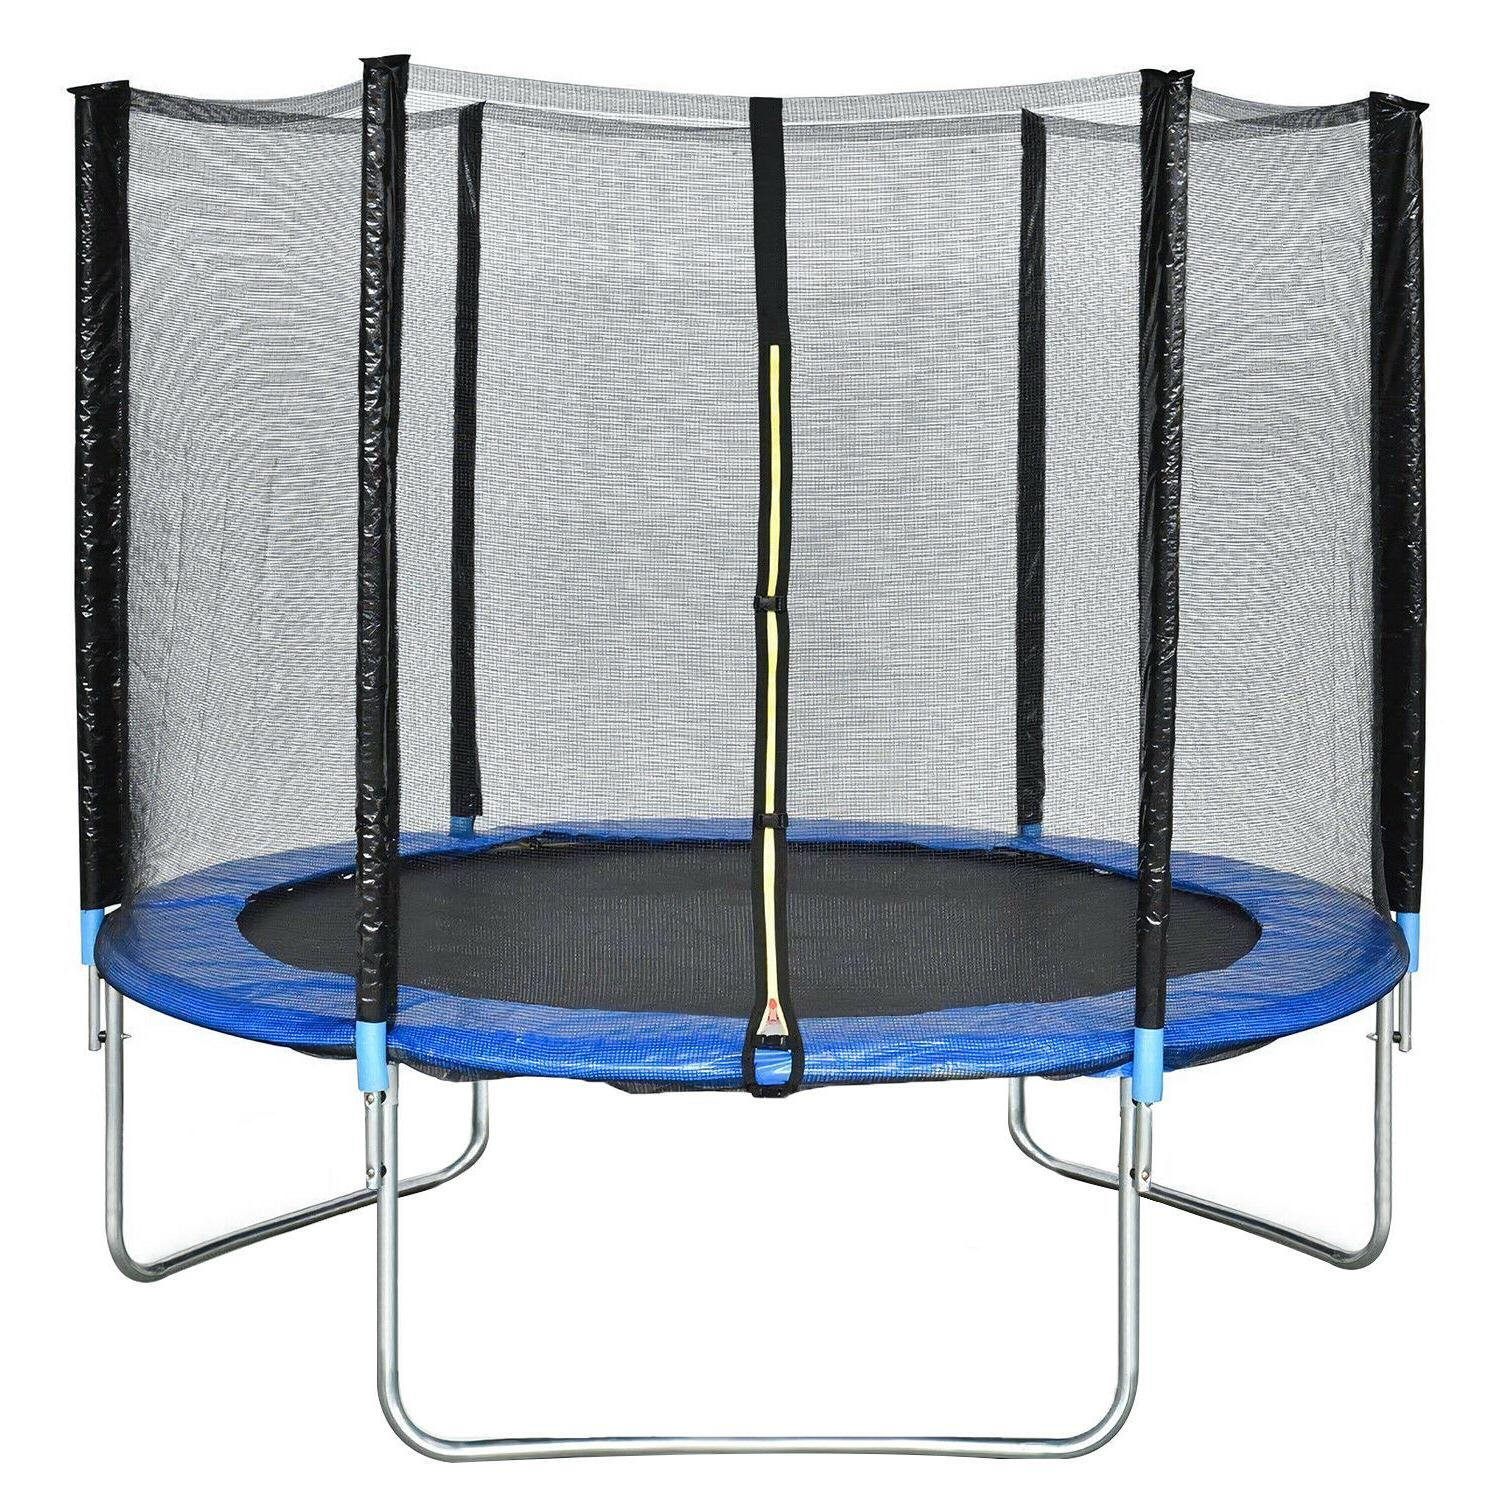 BestMassage Trampoline 10FT Round Jumping Table with Safety